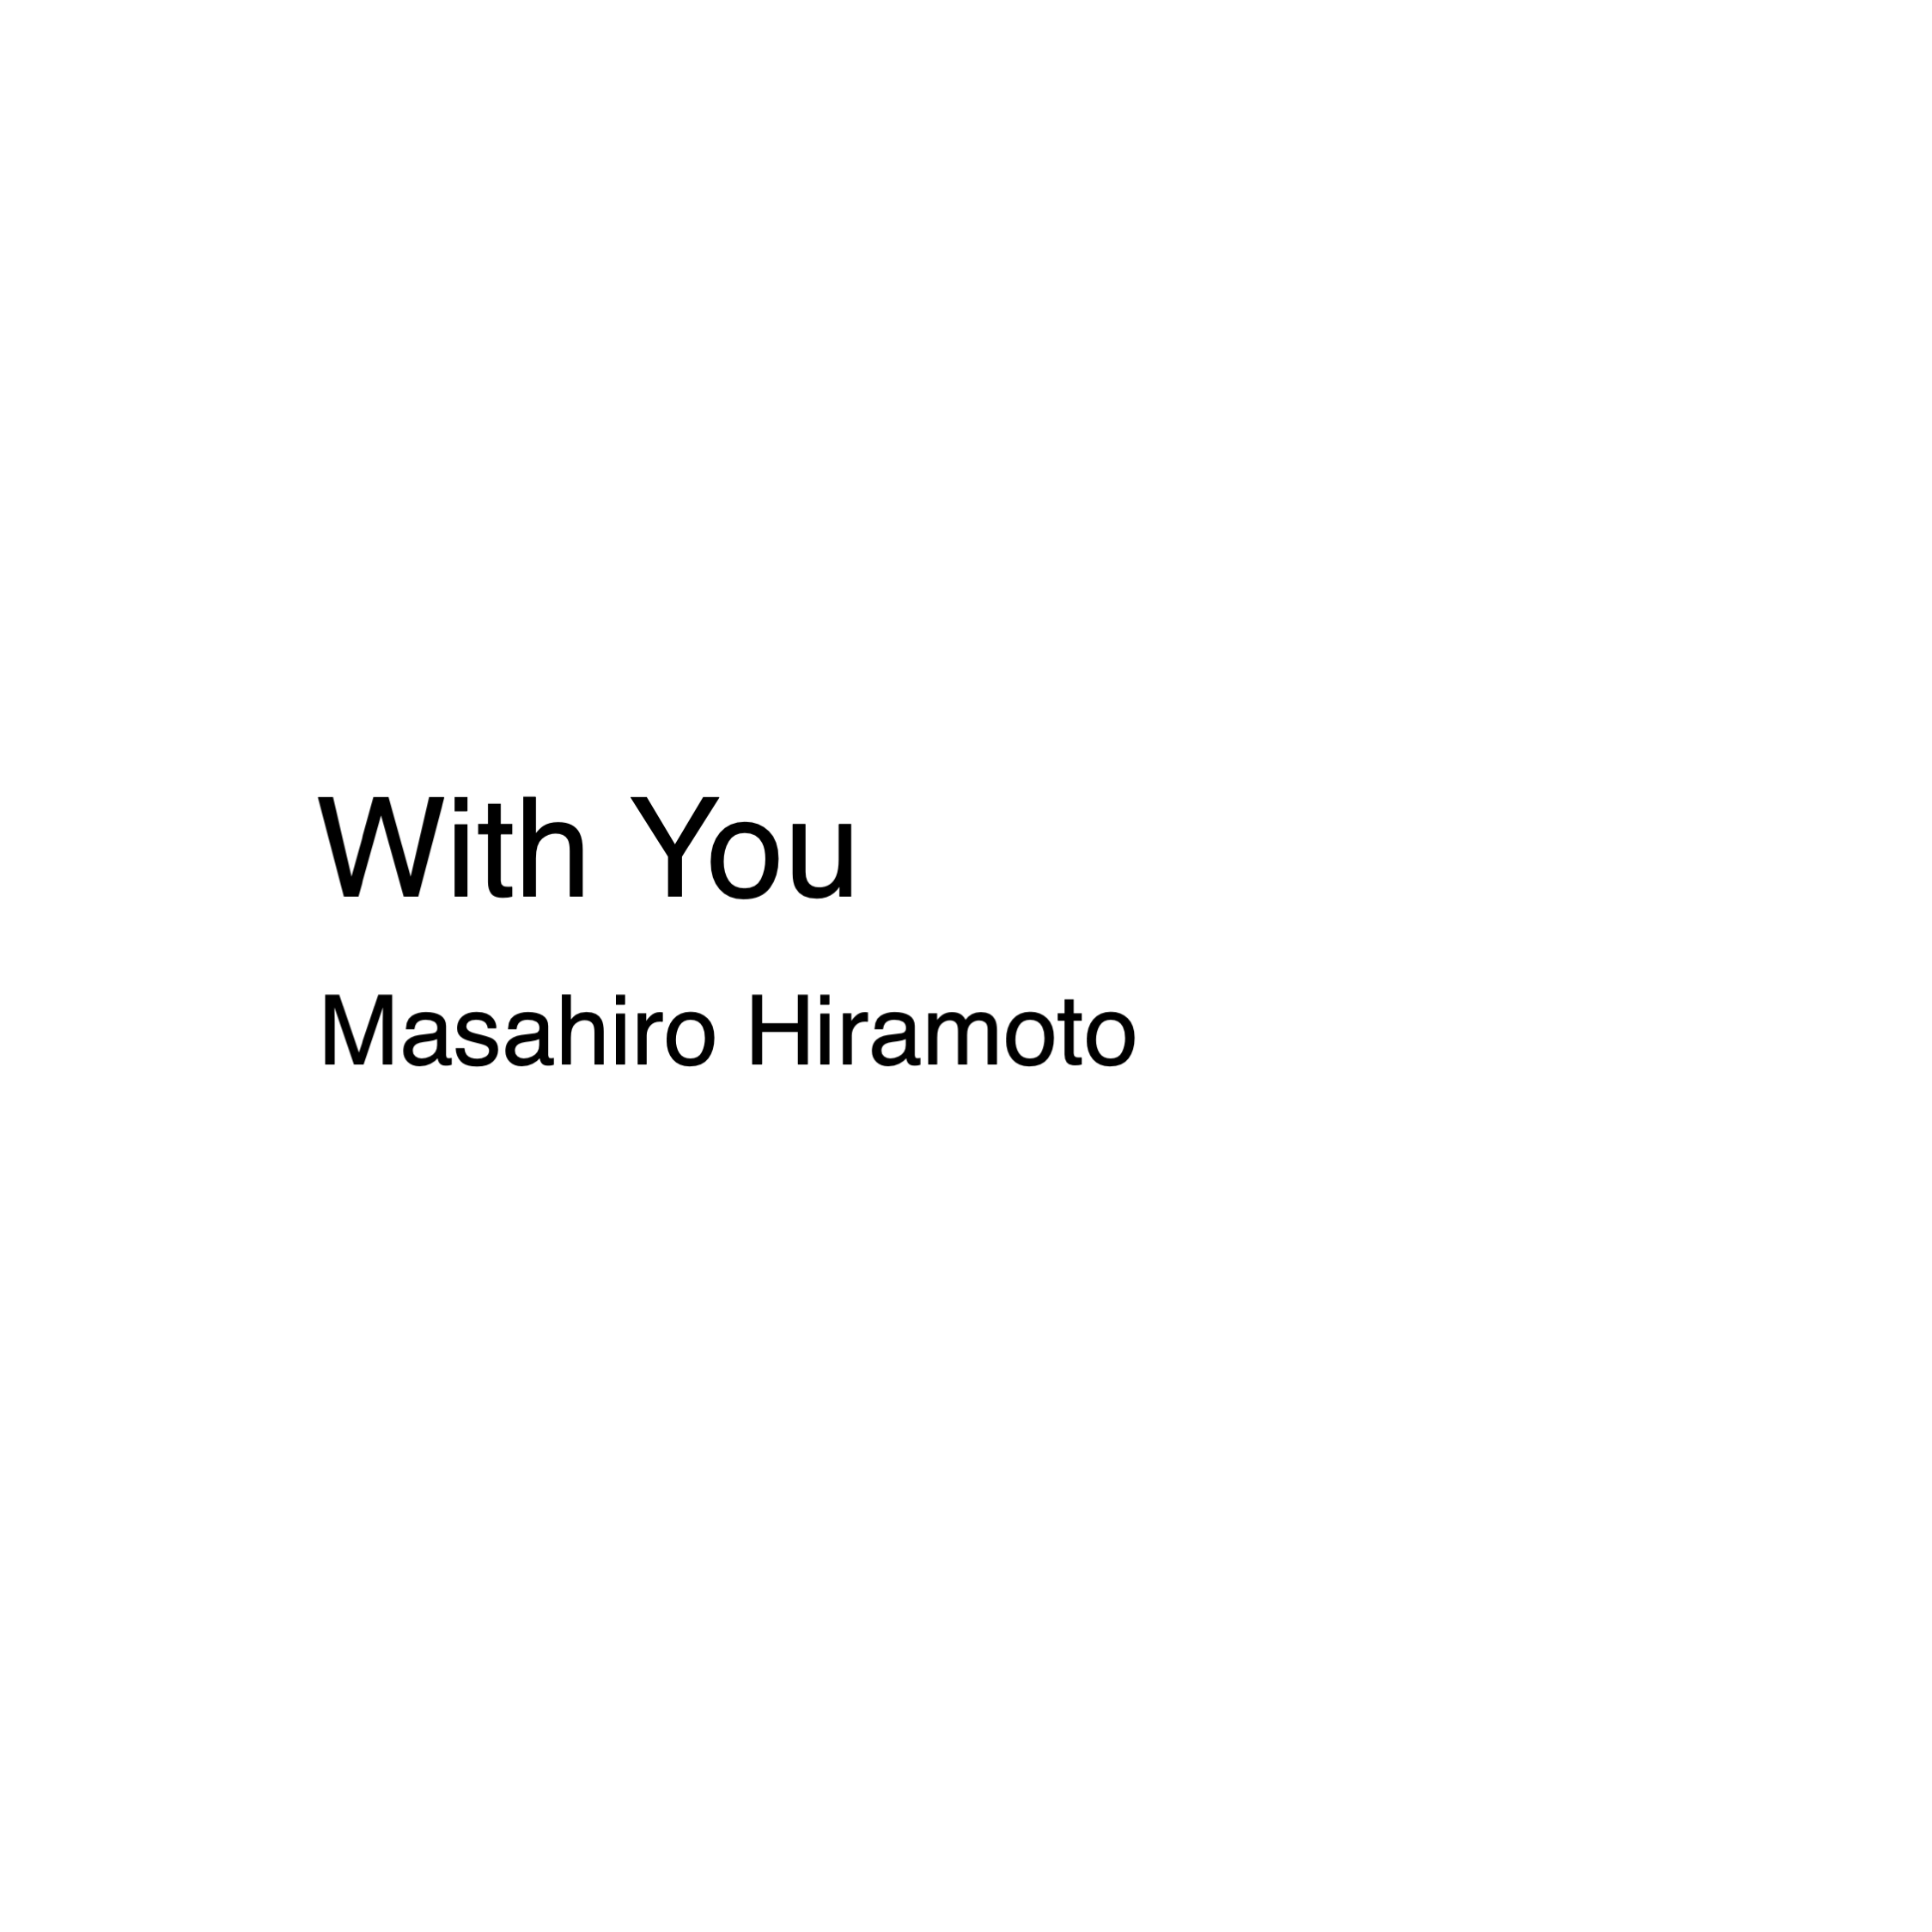 『With You』(TT011)本日リリース